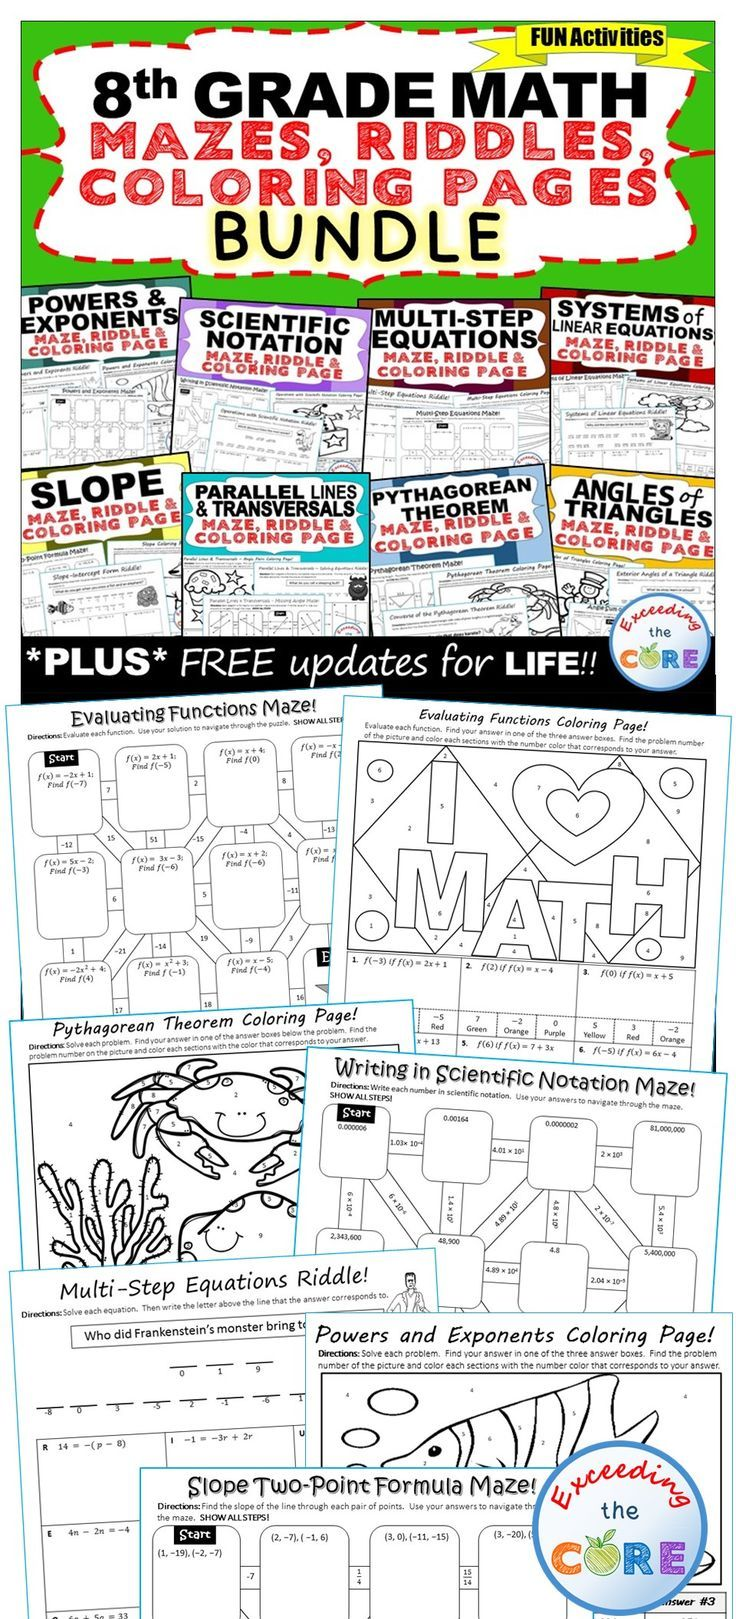 8th Grade Math Mazes, Riddles & Coloring Pages (Fun MATH